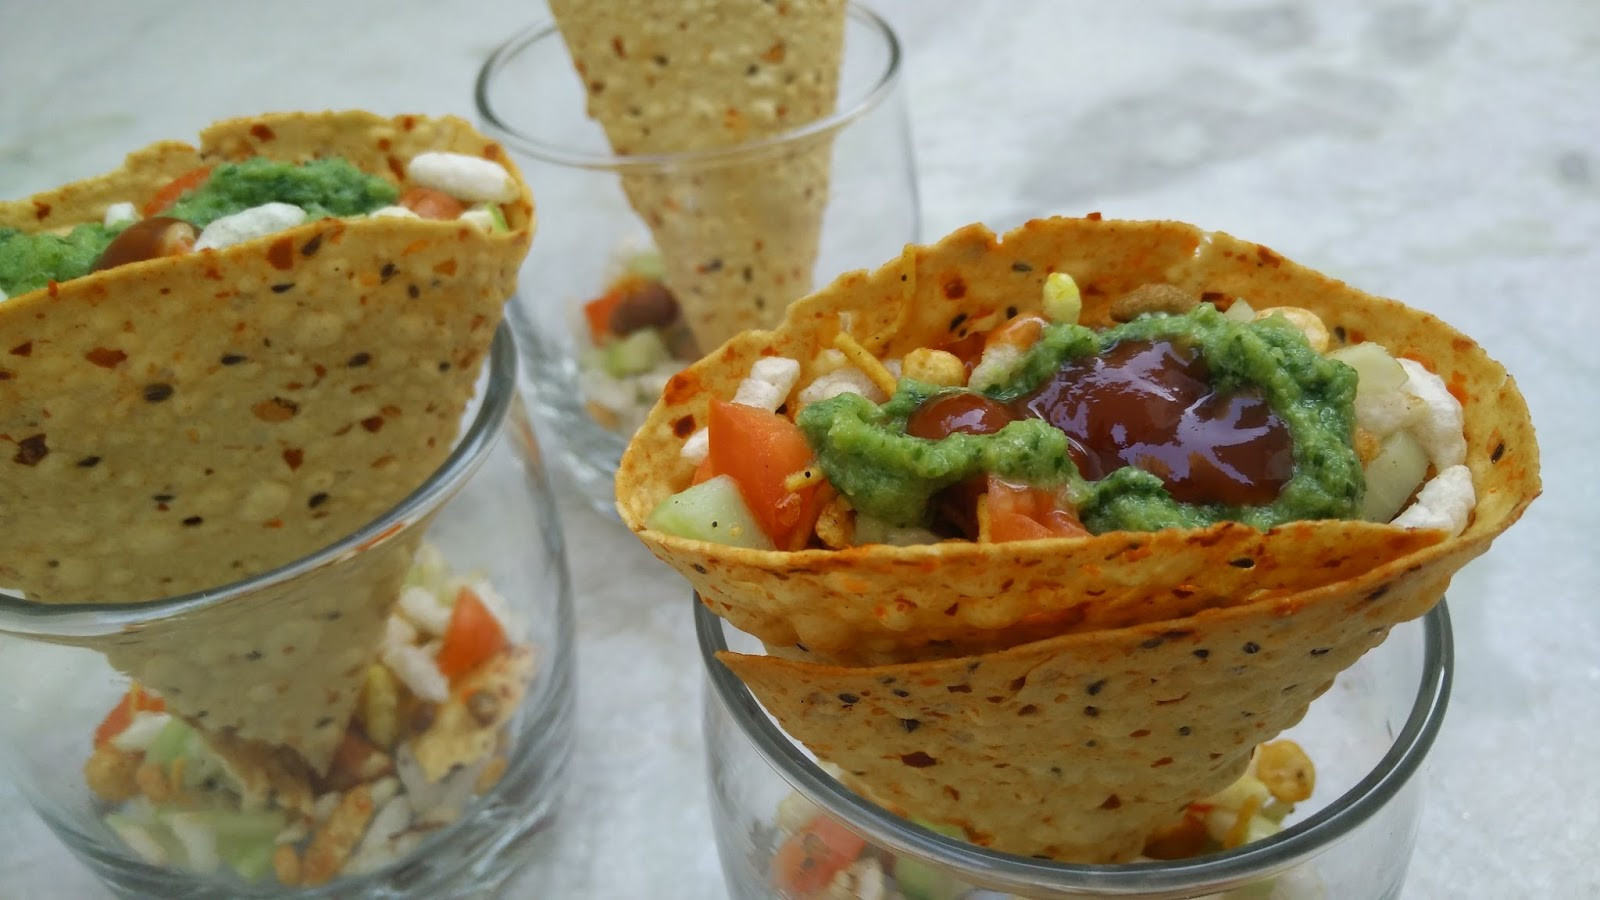 Healthy Quick Snacks Recipes  Masala Papad Cones Recipe Indian Snacks Healthy Kadai